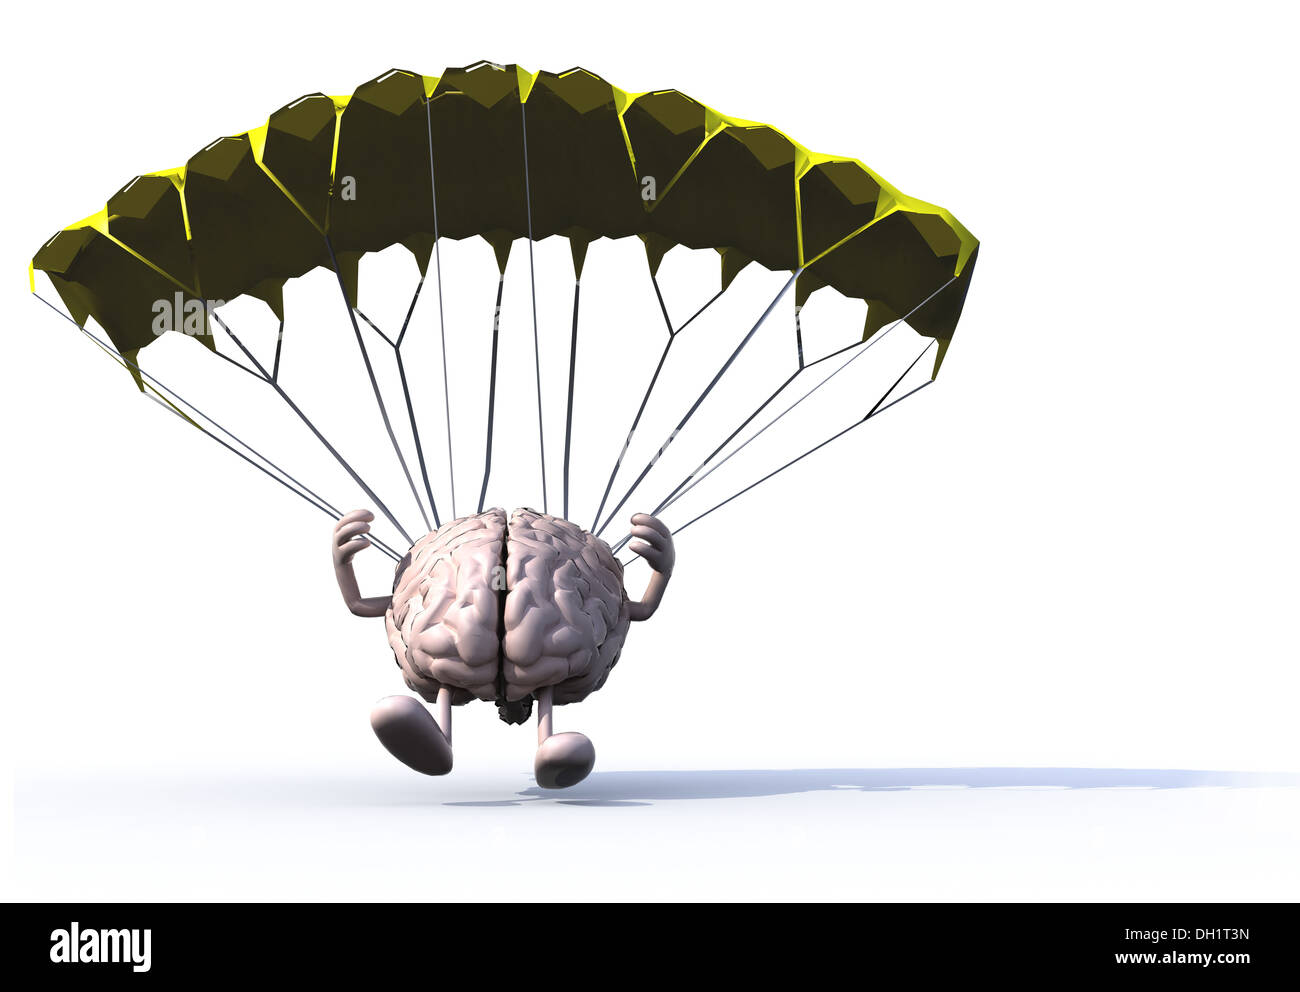 human brain that is landing with parachute, 3d illustration